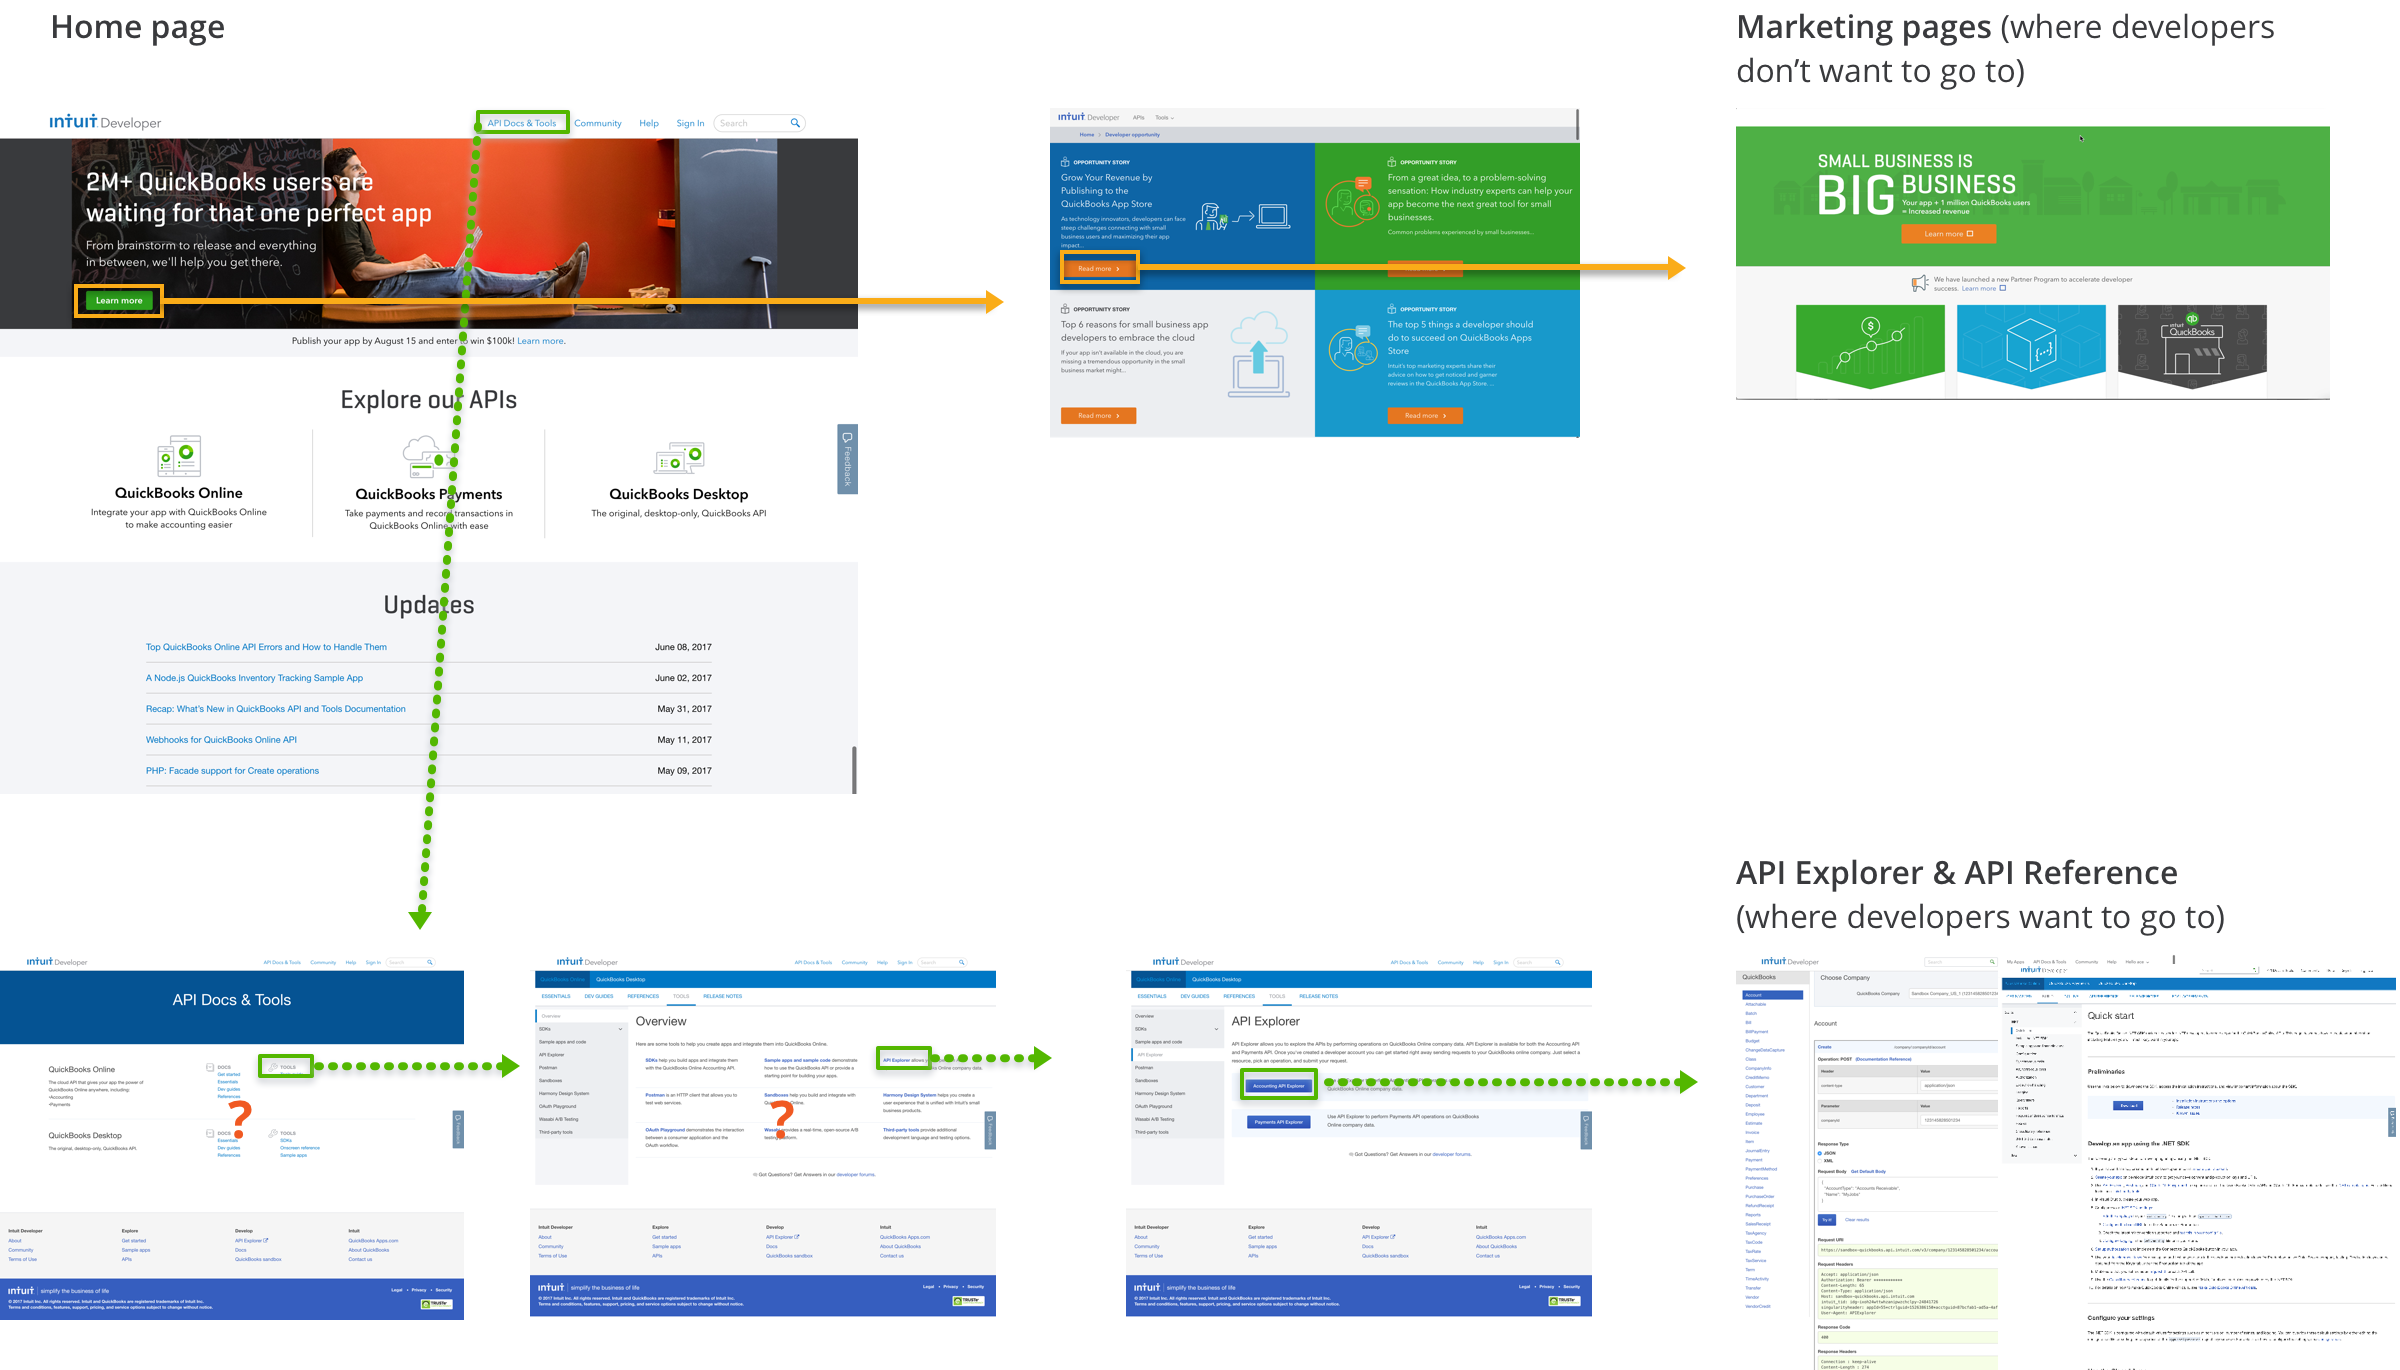 Screenshot flow from the home page to API explorer with 4 steps while the main CTA in the home page leads to marketing sites